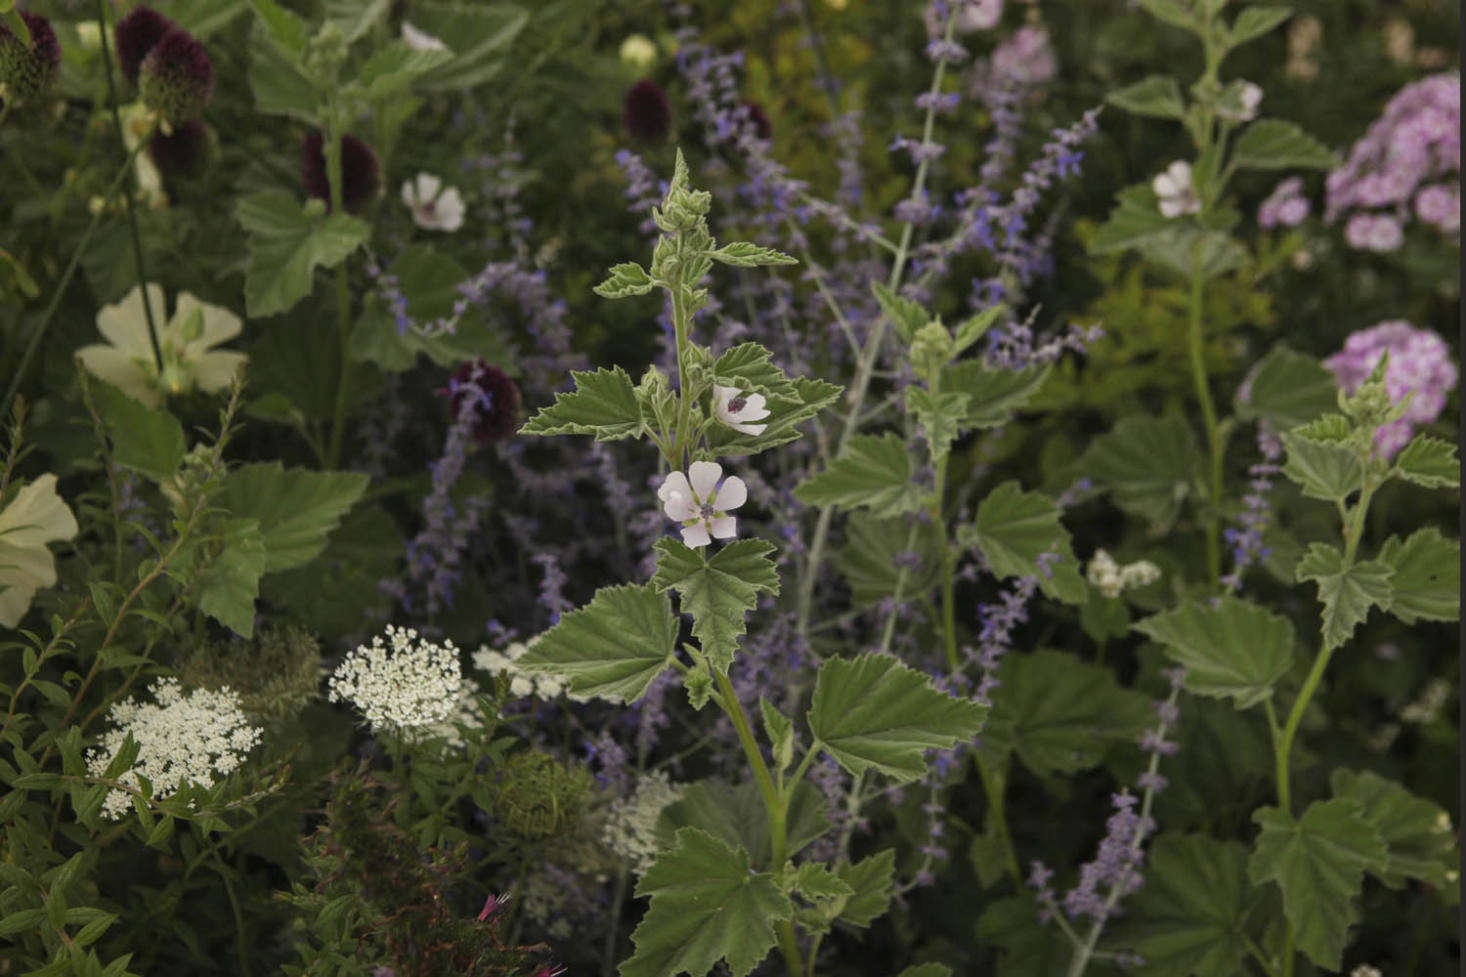 Soothing marshmallow flanked by Russian sage, hollyhocks, drumstick alliums, and umbels of wild carrot.